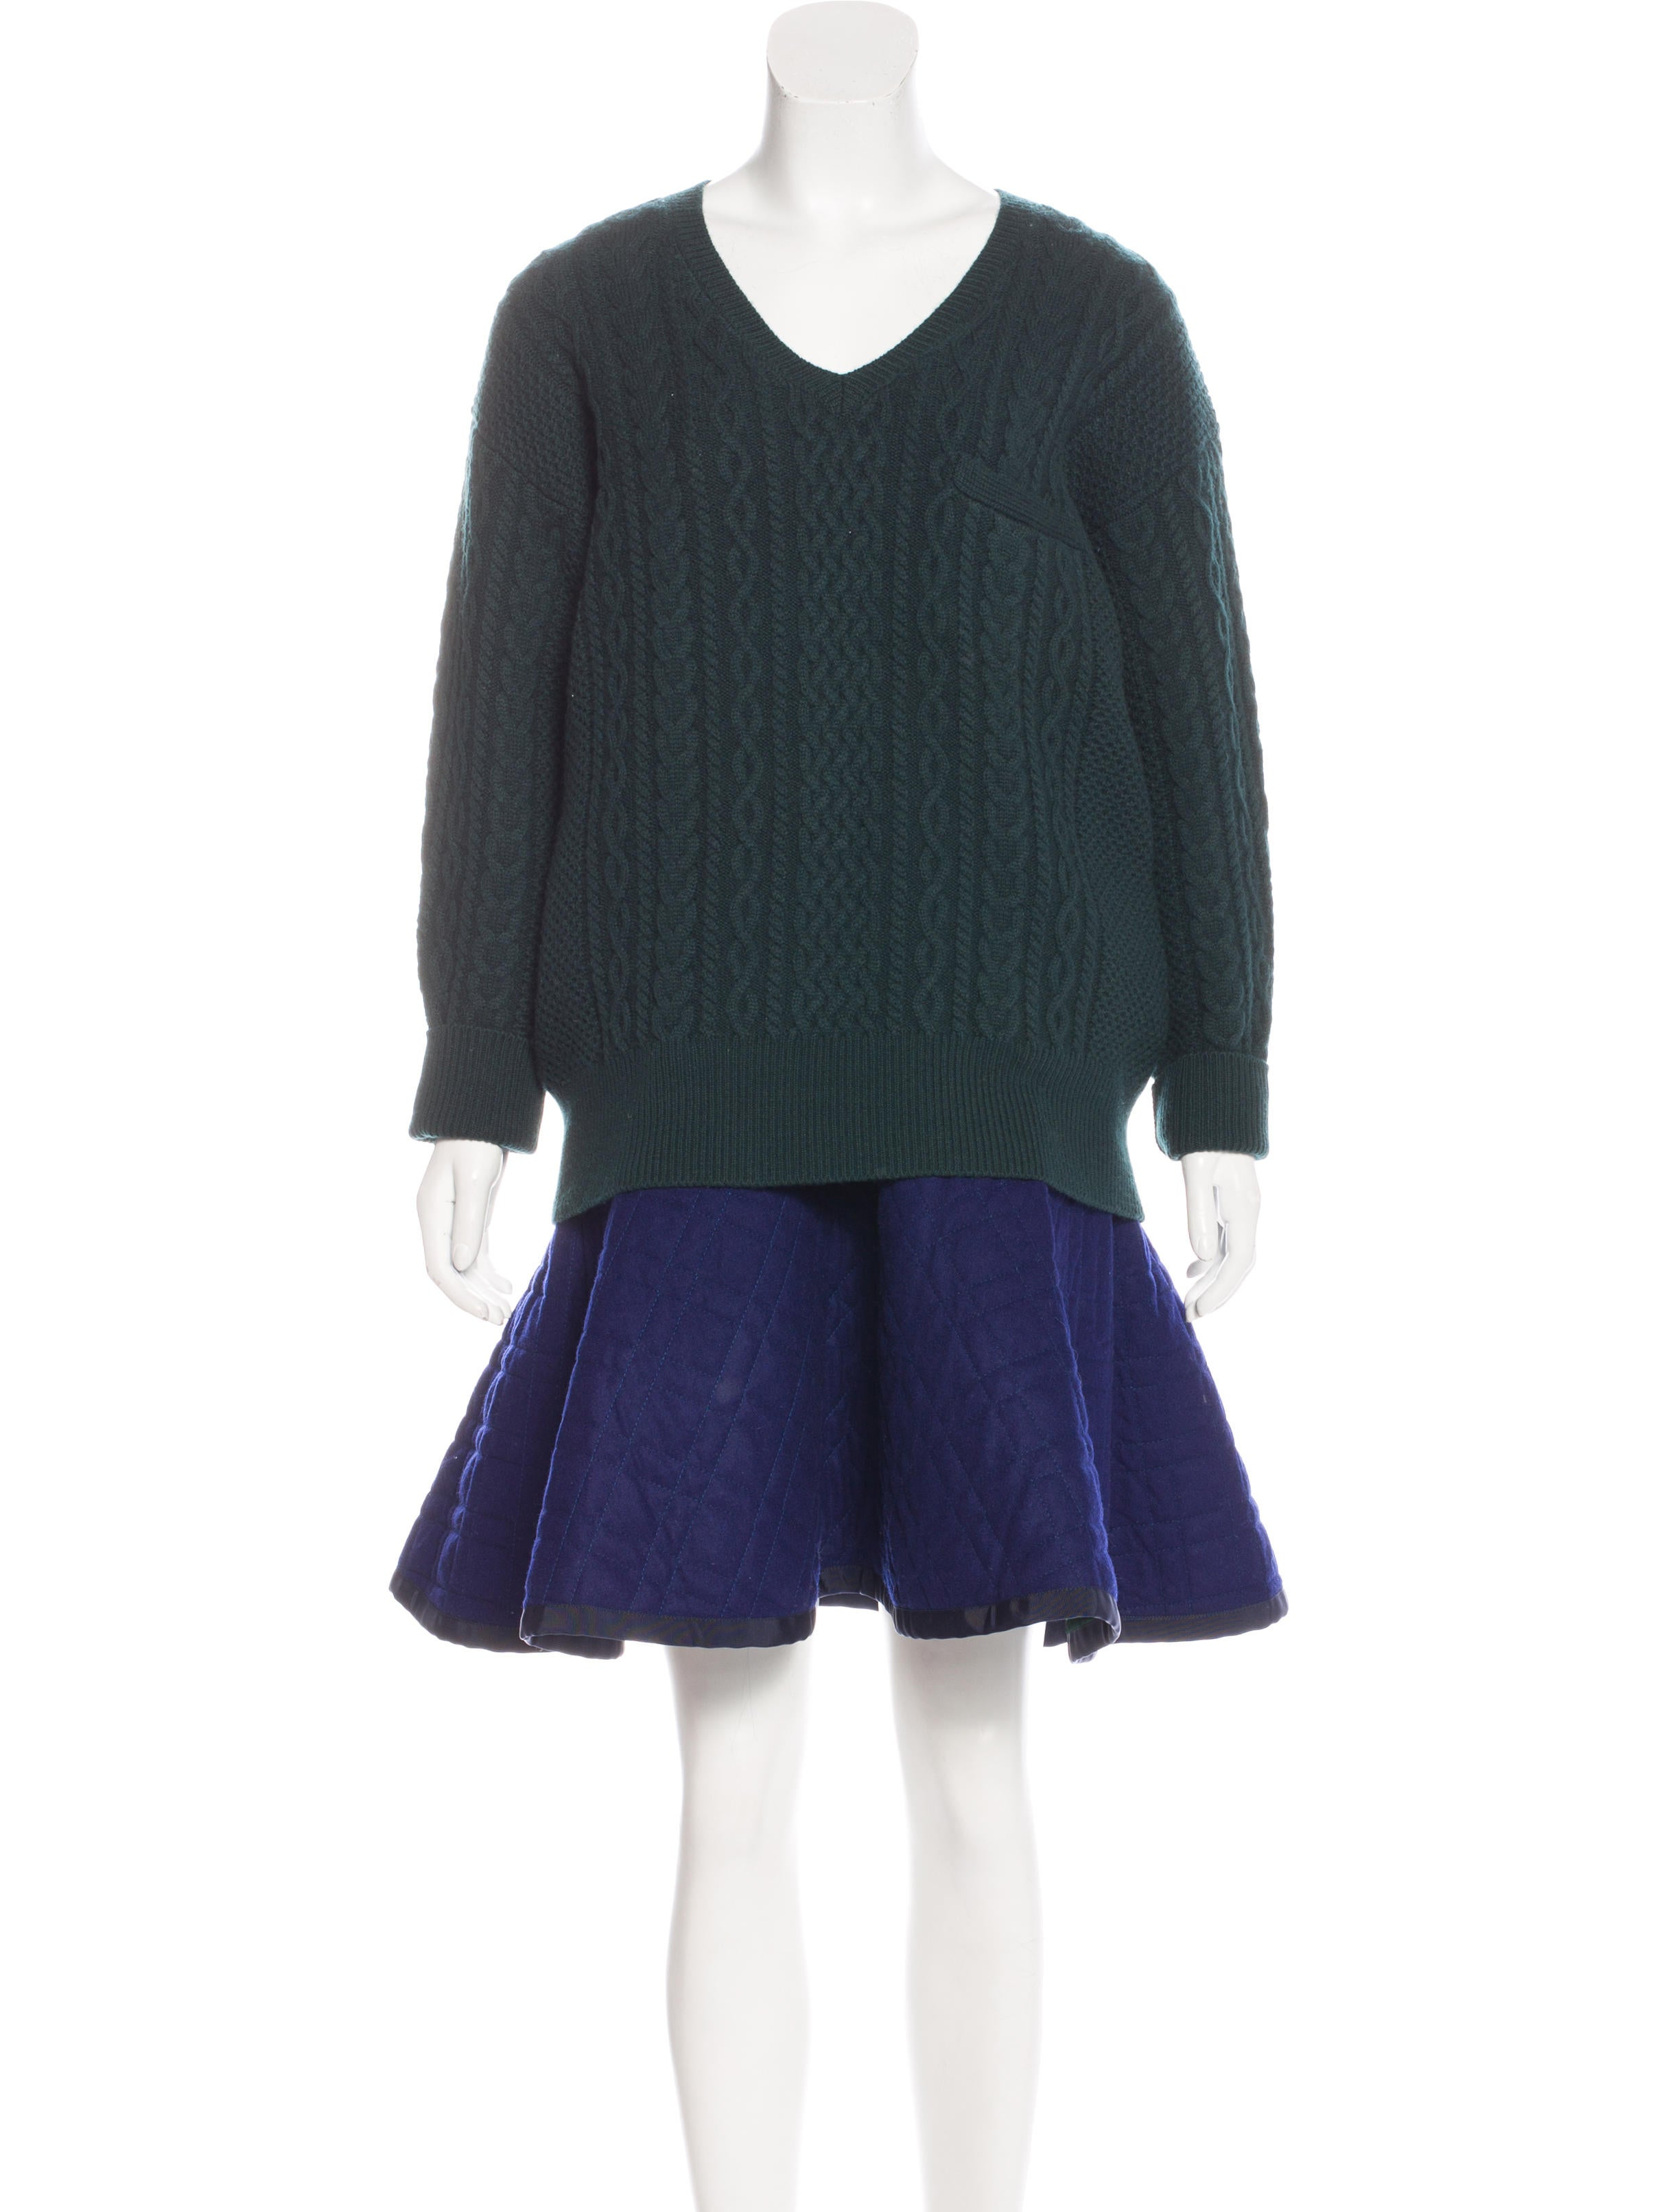 Sacai Luck Wool Sweater Dress - Clothing - W4H20627 | The RealReal